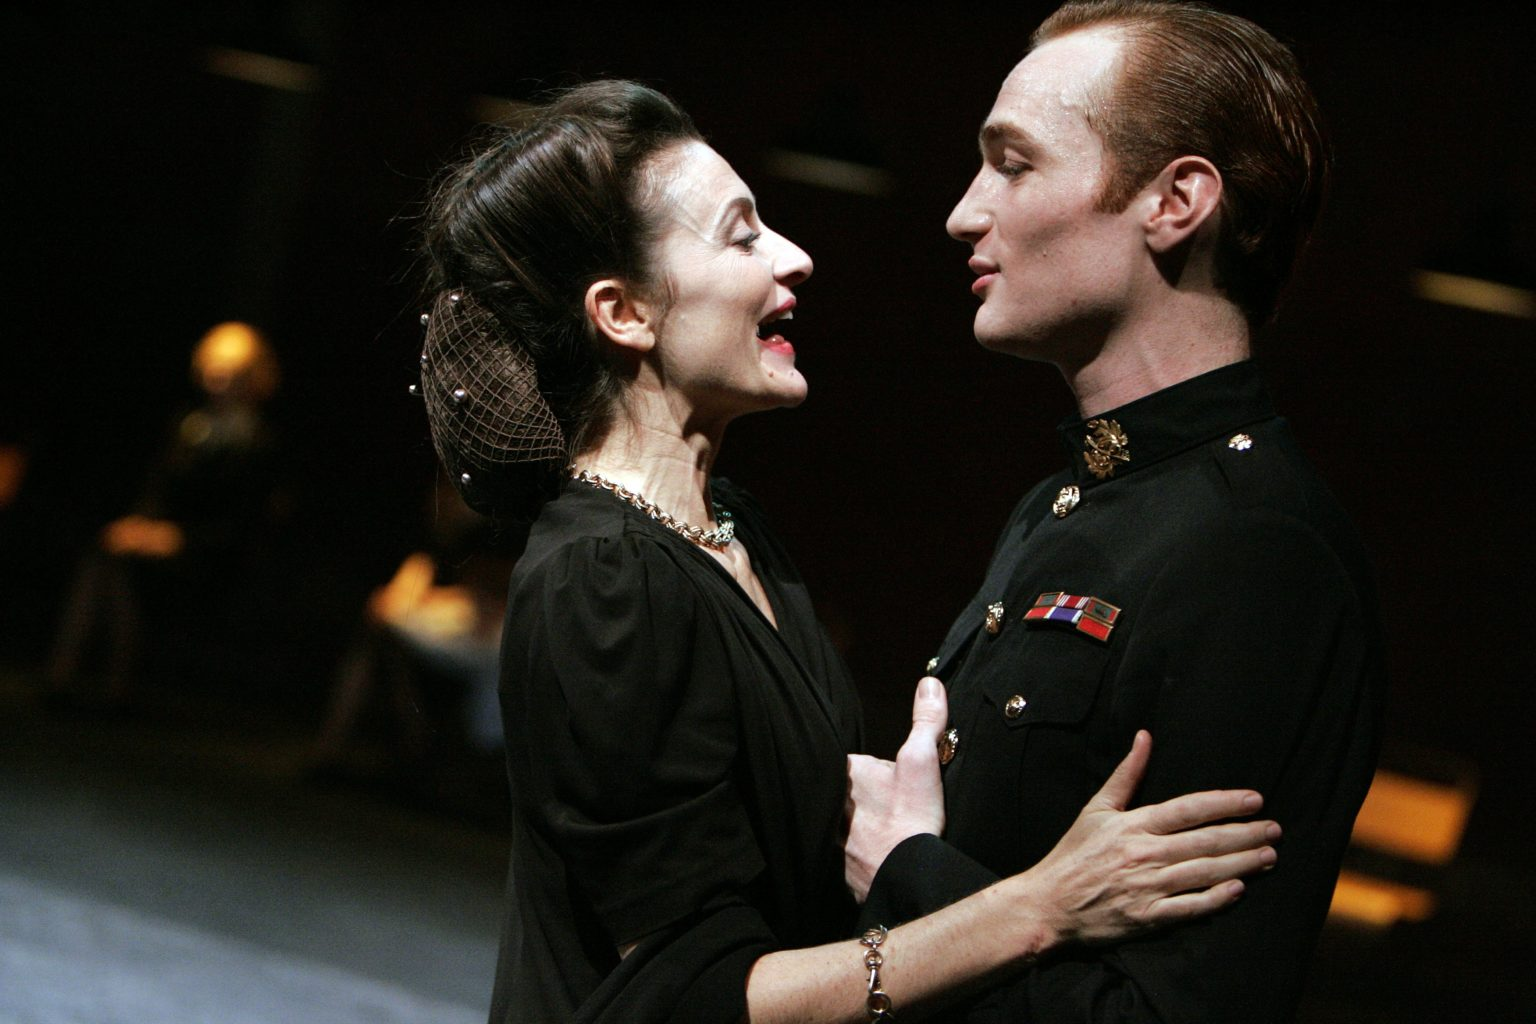 Camille Japy (Hermione) and Xavier Boiffier (Oreste) discuss the process of creating Andromaque